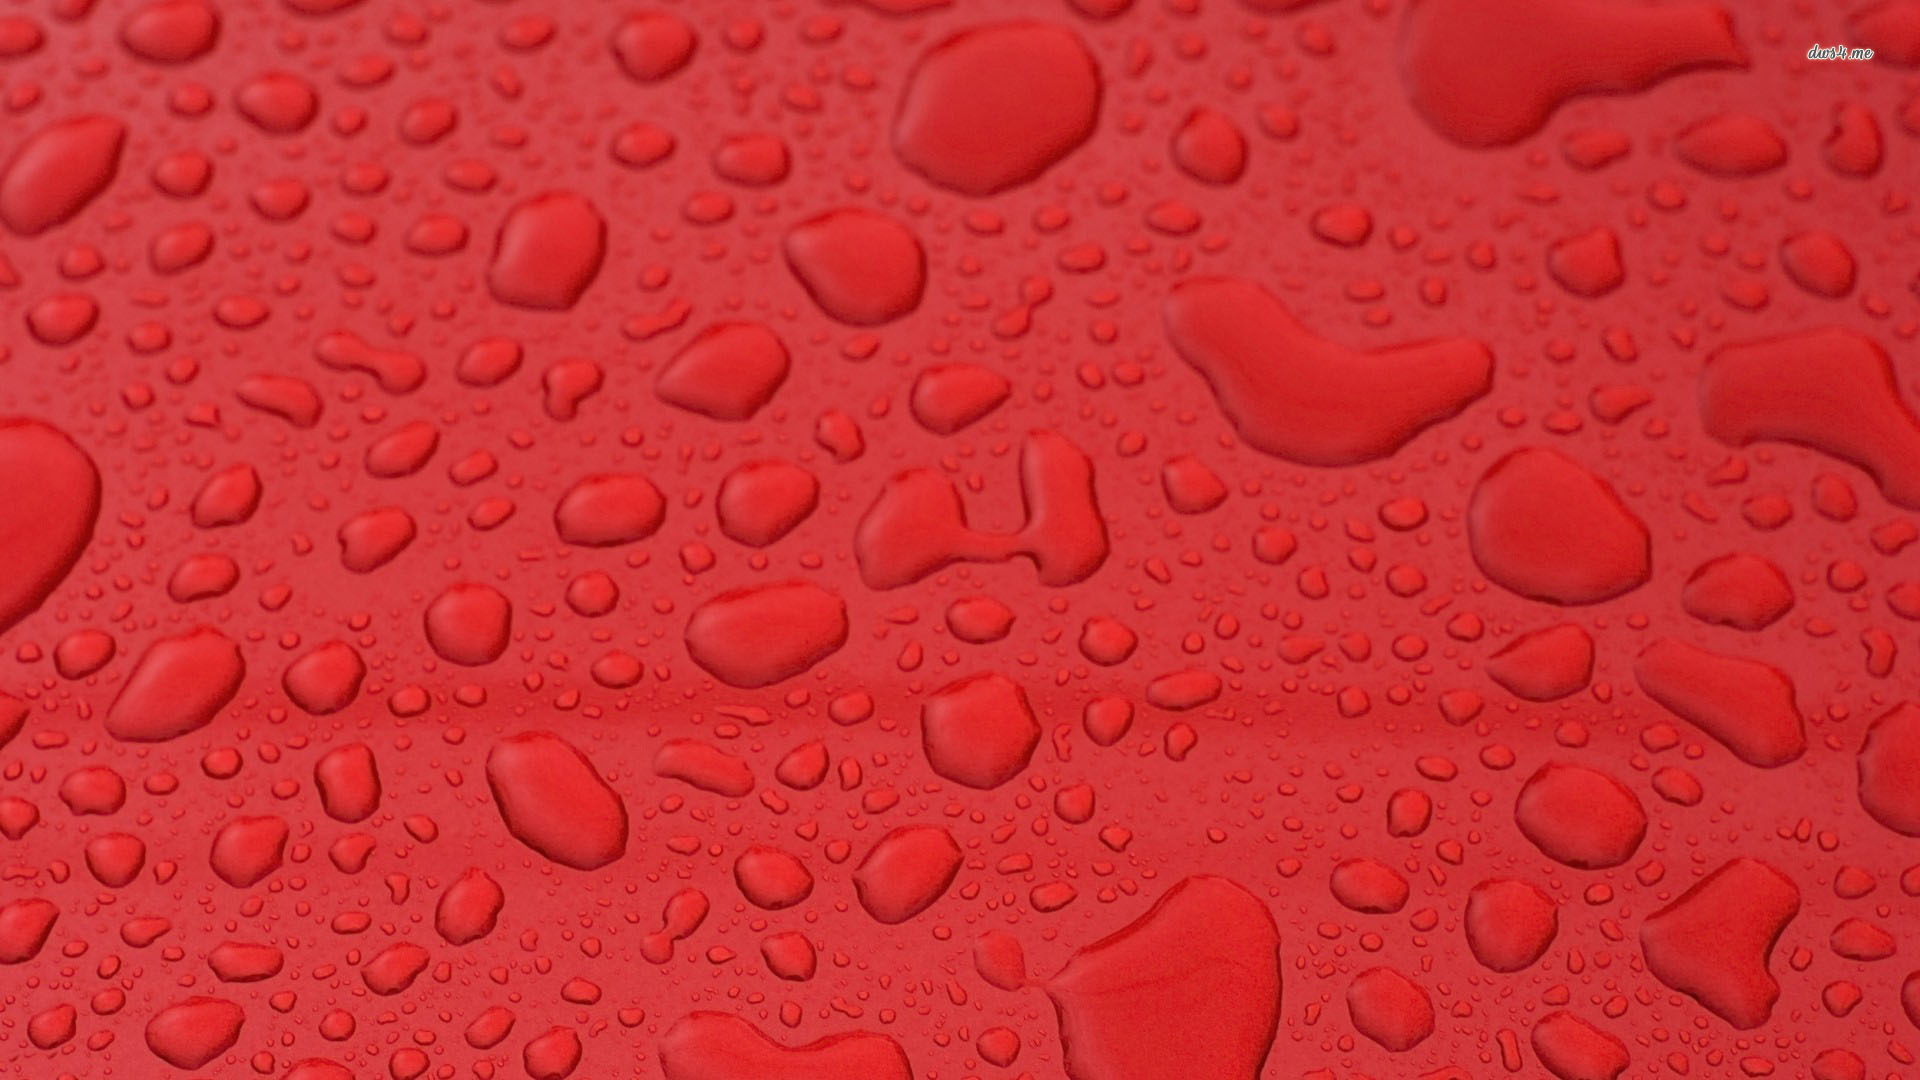 Water Drops on Red Texture Artistic Wallpaper HD Wallpapers 1920x1080